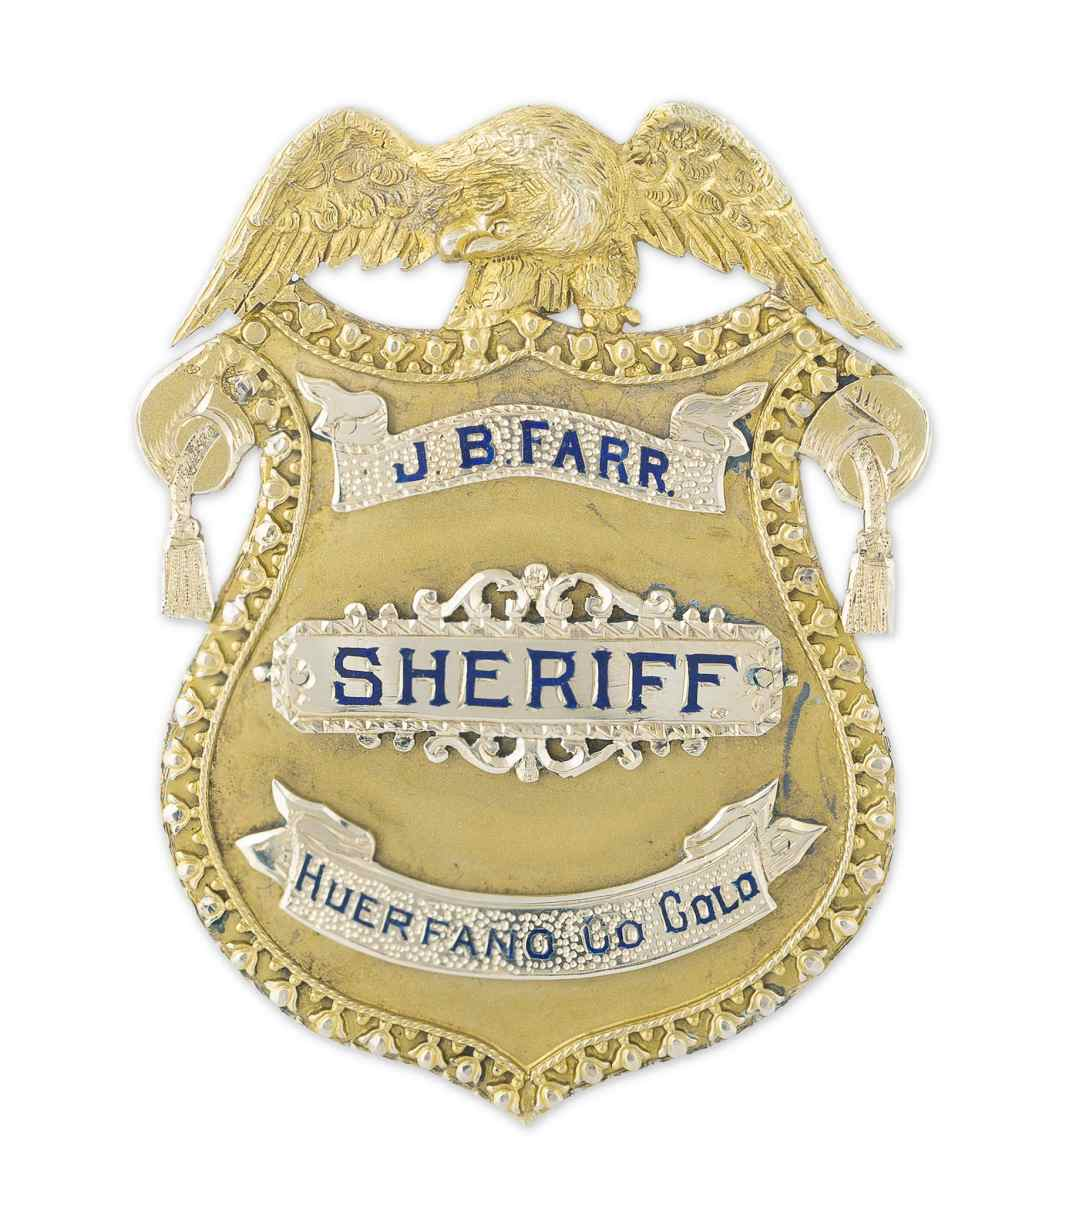 J.B. Farr early 1900s 14kt gold sheriff's badge.